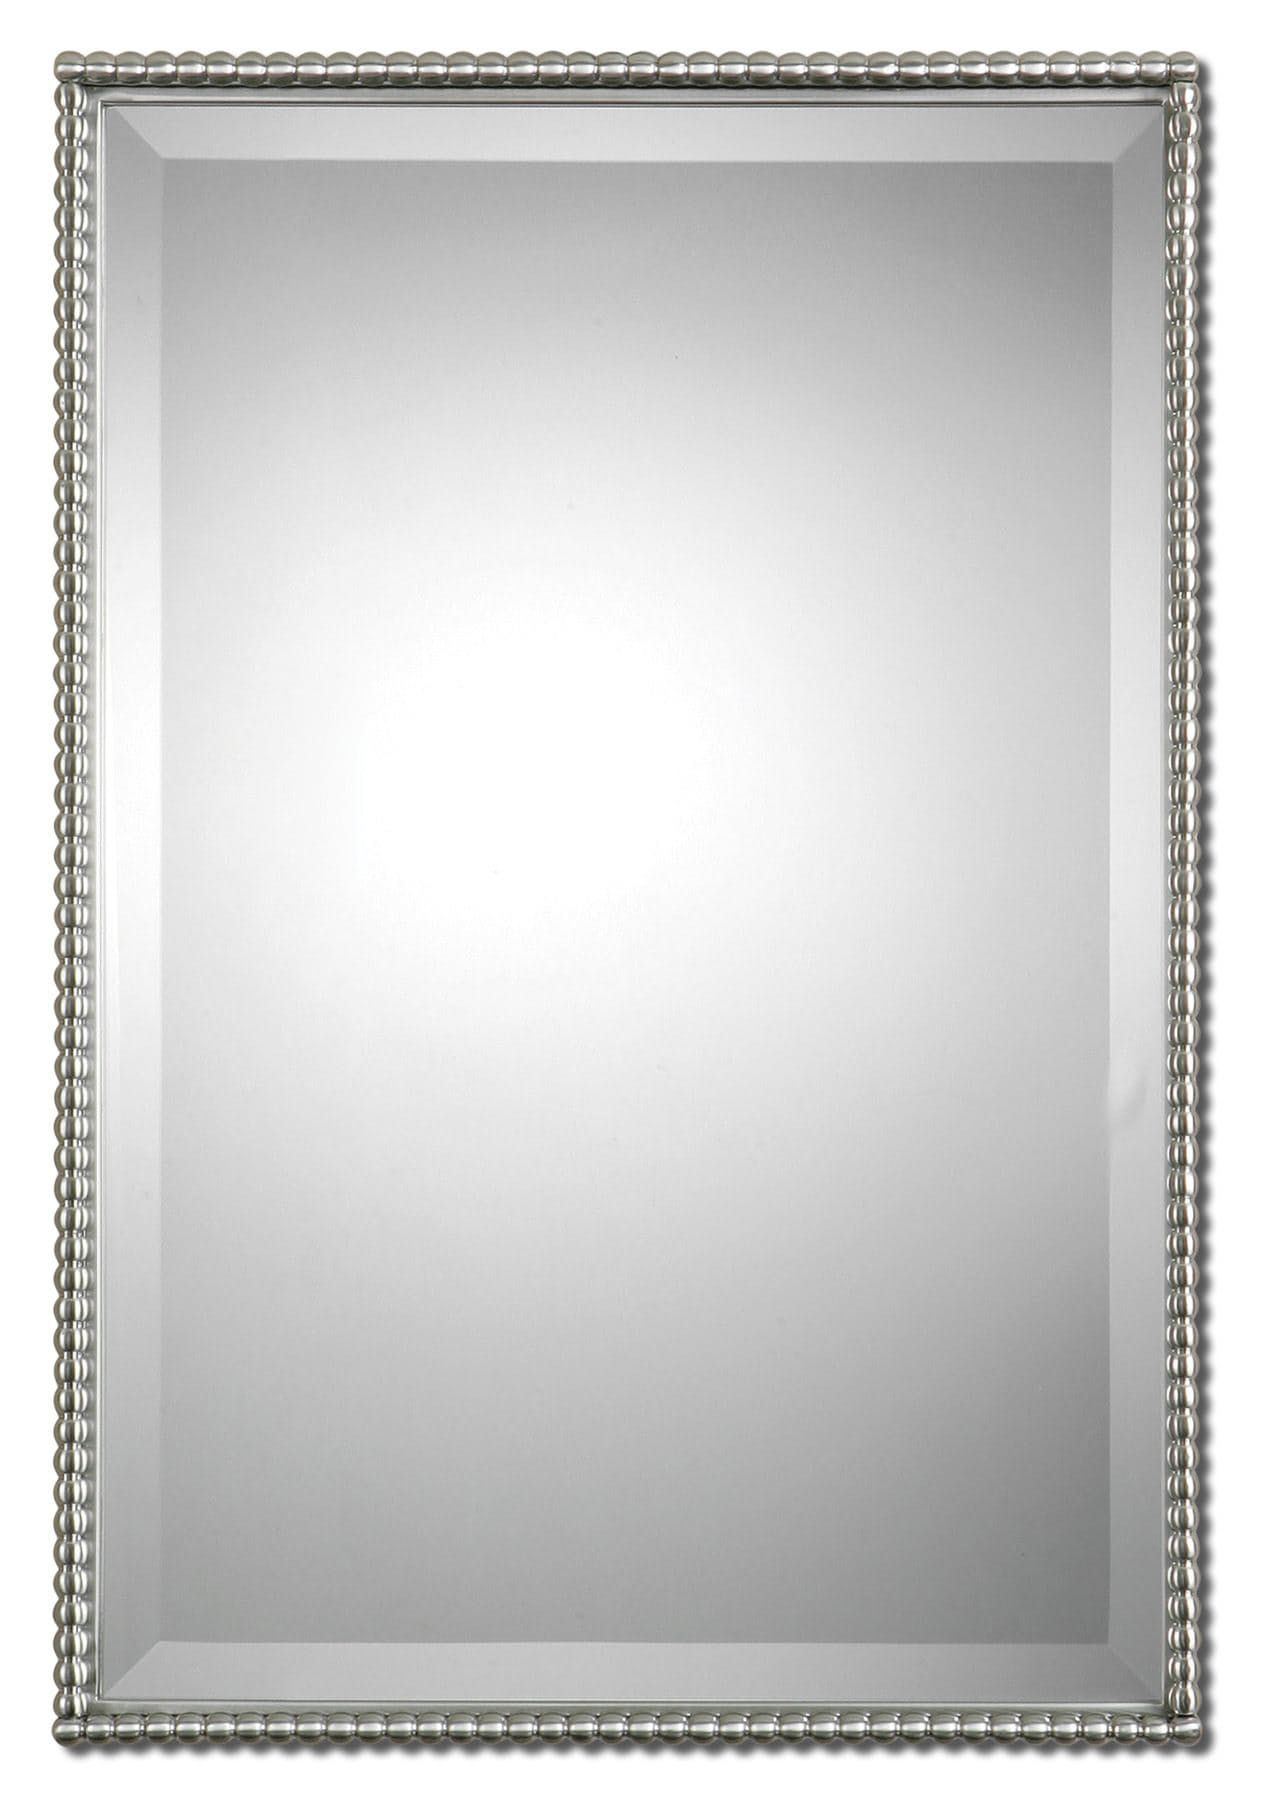 Brushed nickel, metal frame features a decorative beading design ...